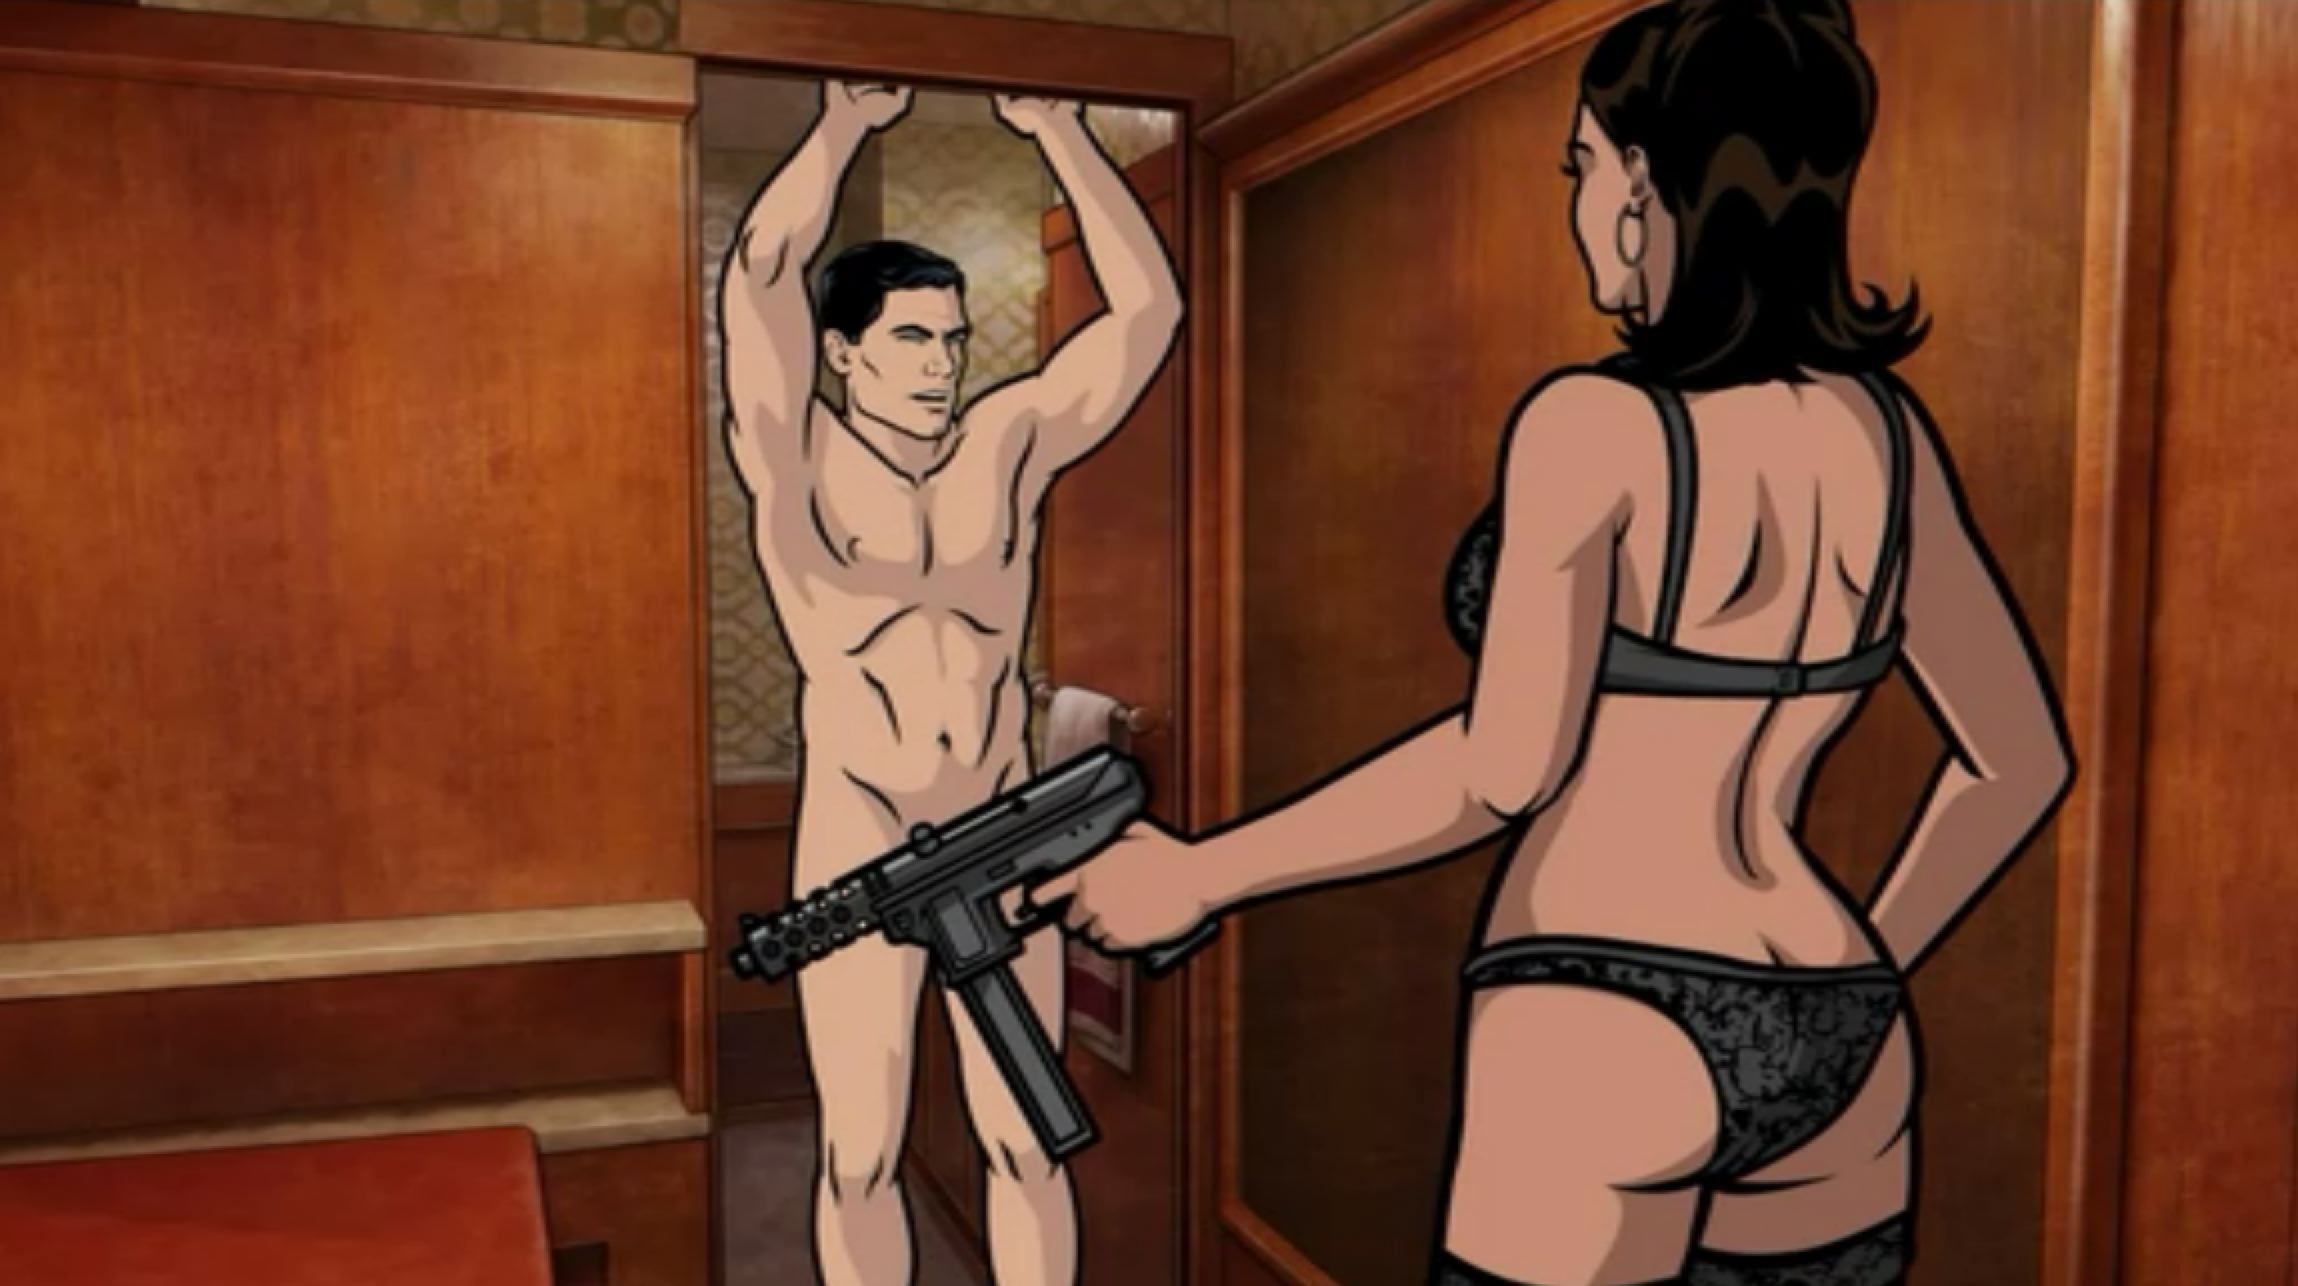 Archer having sex with pam porn hentia scene